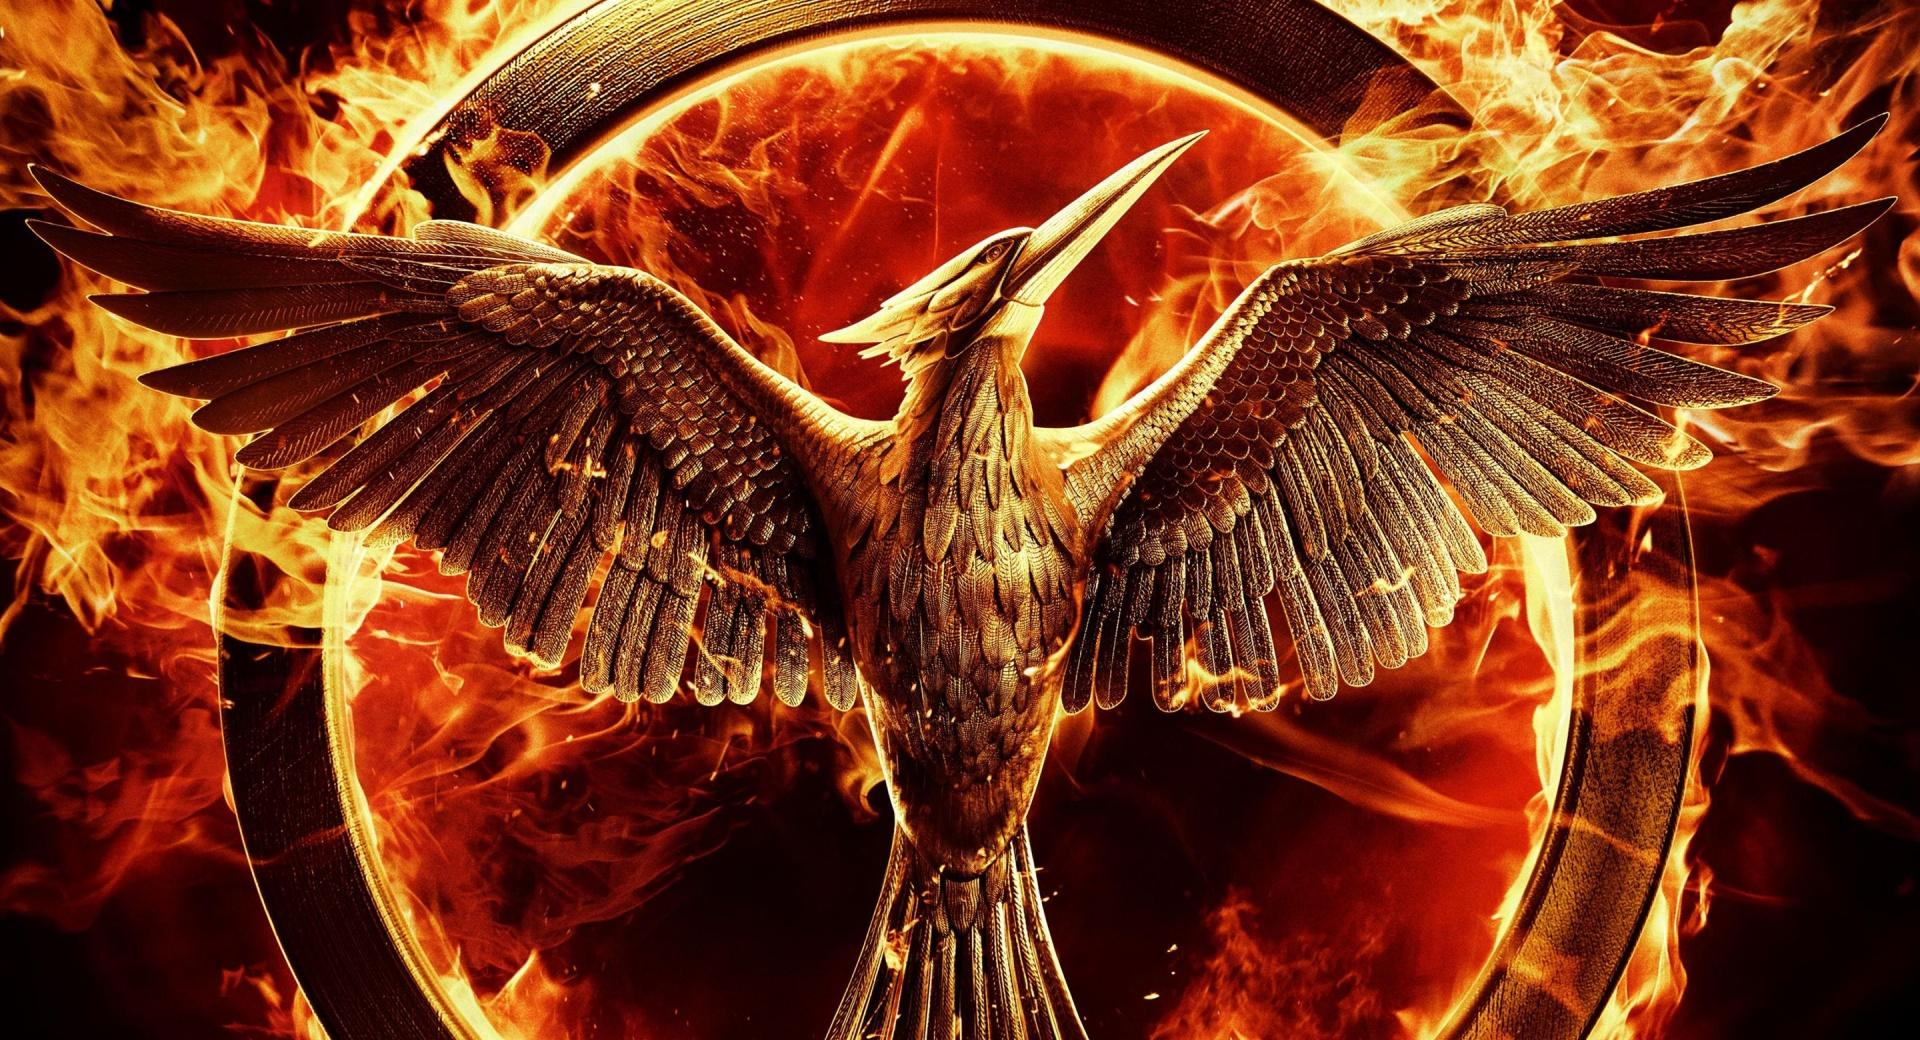 The Hunger Games Mockingjay Part 1 wallpapers HD quality